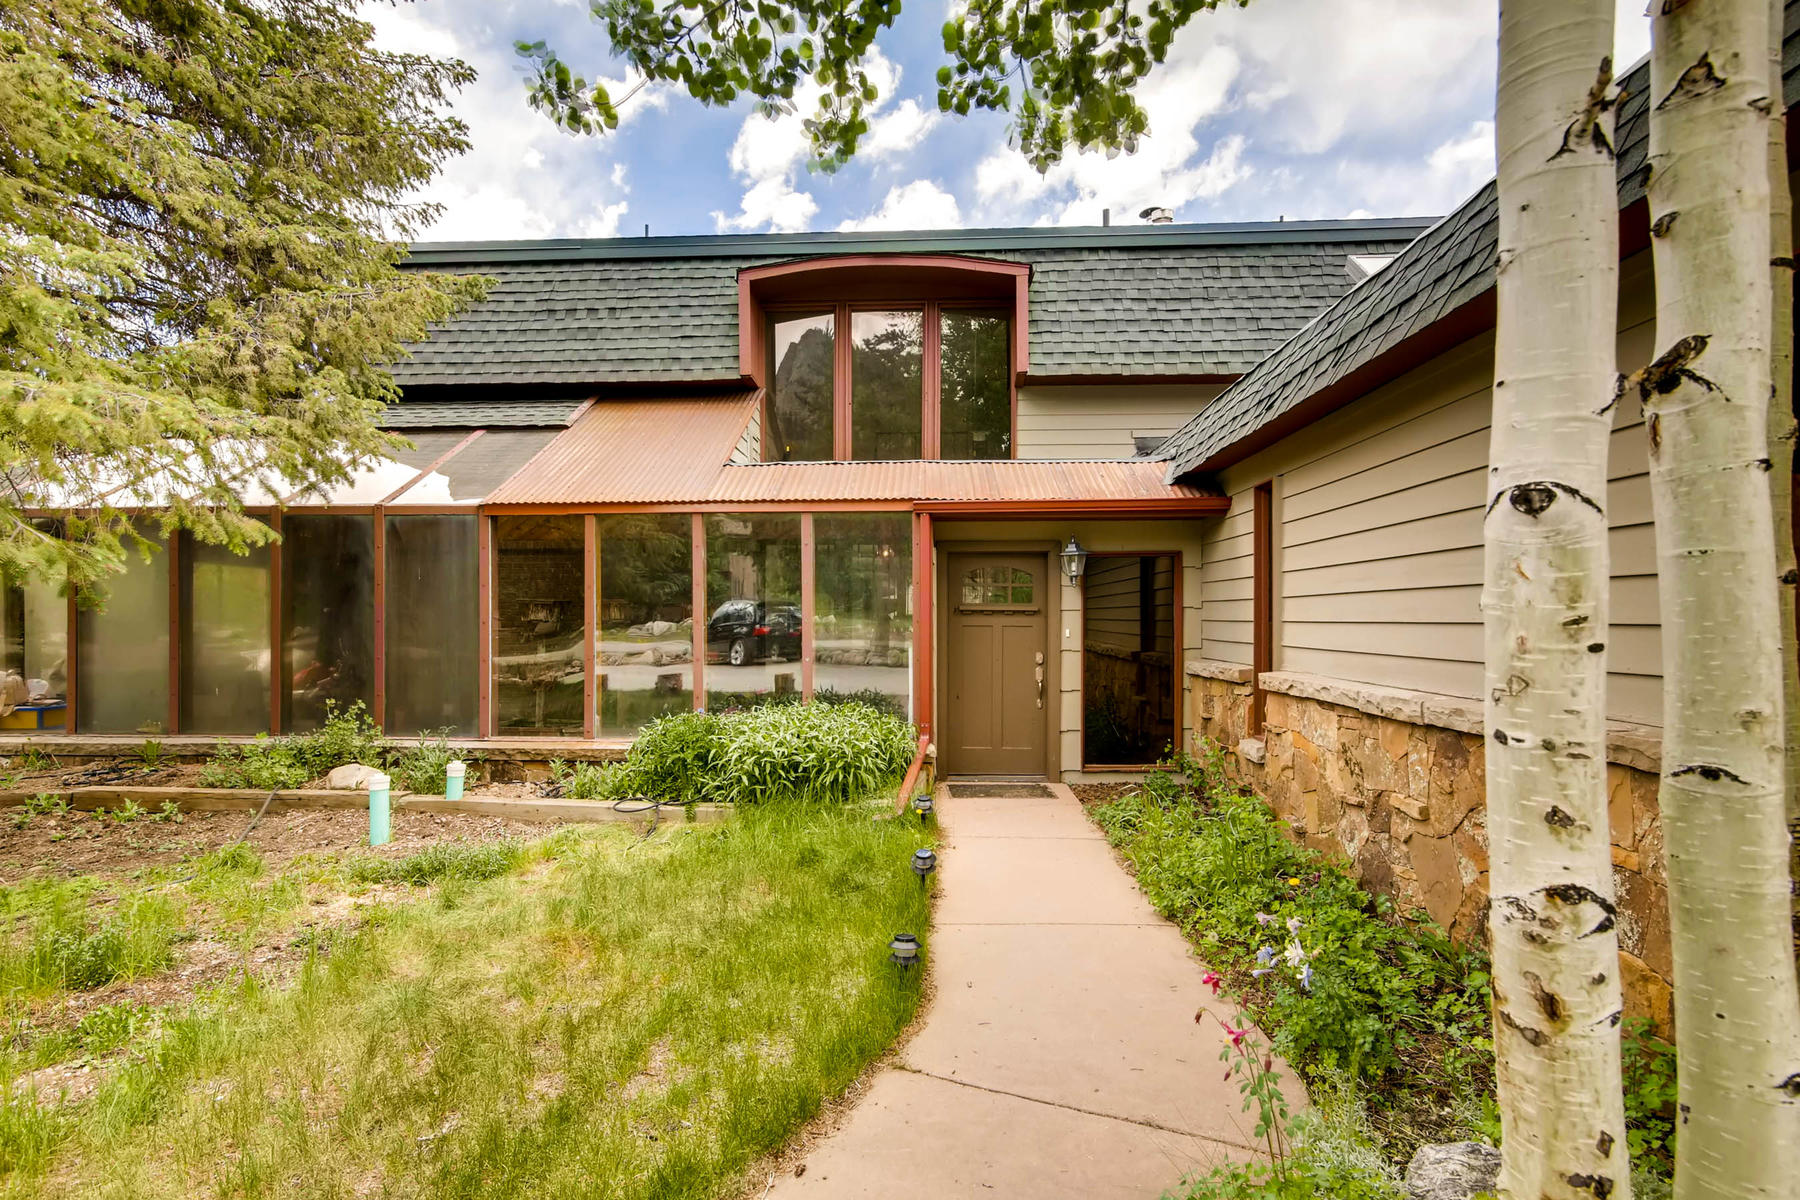 Single Family Homes for Sale at Great Single Family/Income Producing Property 205 Aspen Drive, Frisco, Colorado 80443 United States